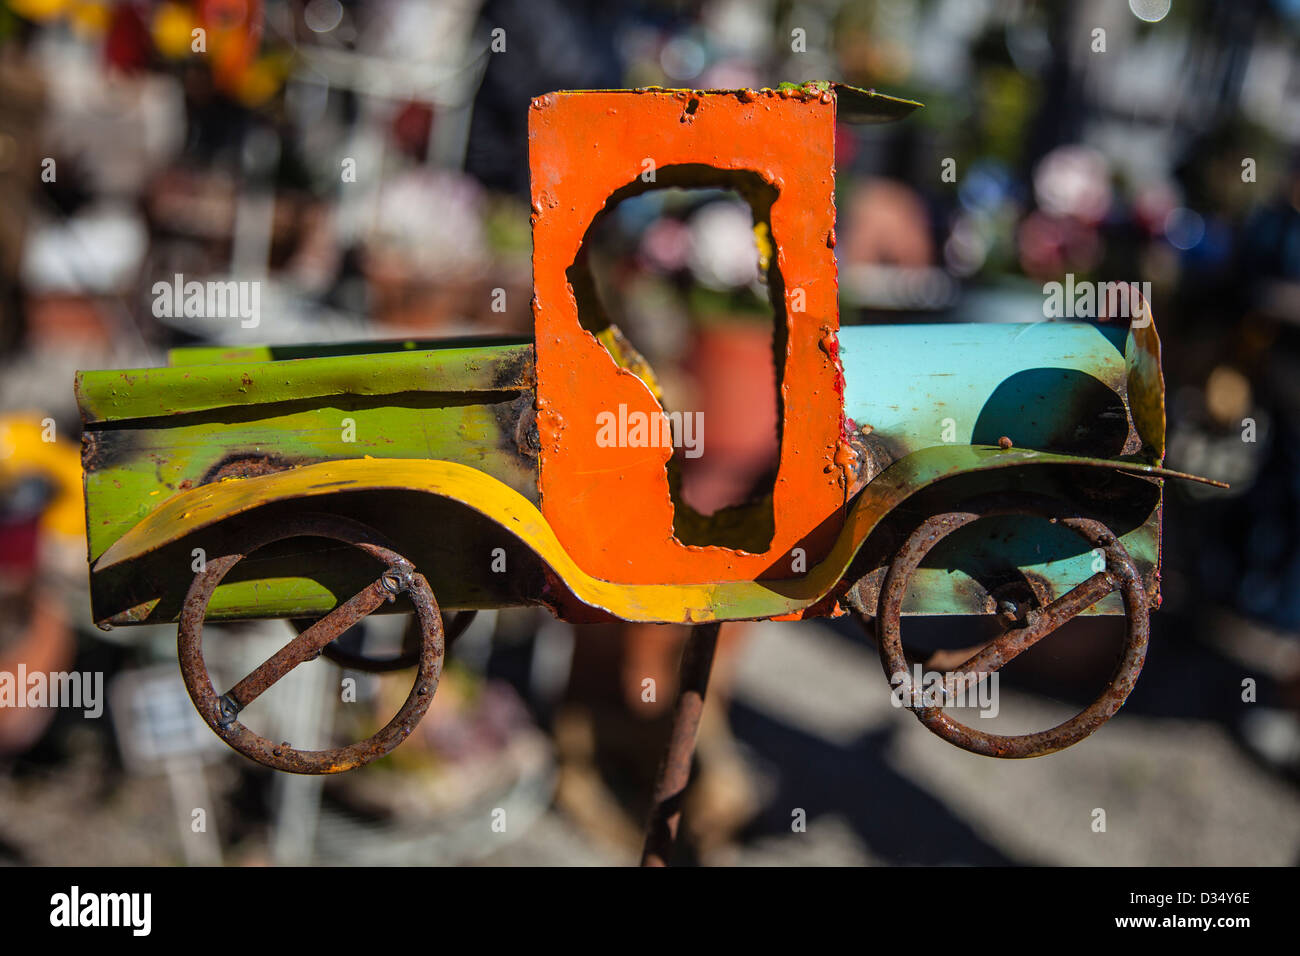 A multicolored primitive toy truck on a rusted metal rod created for placement in a garden. - Stock Image